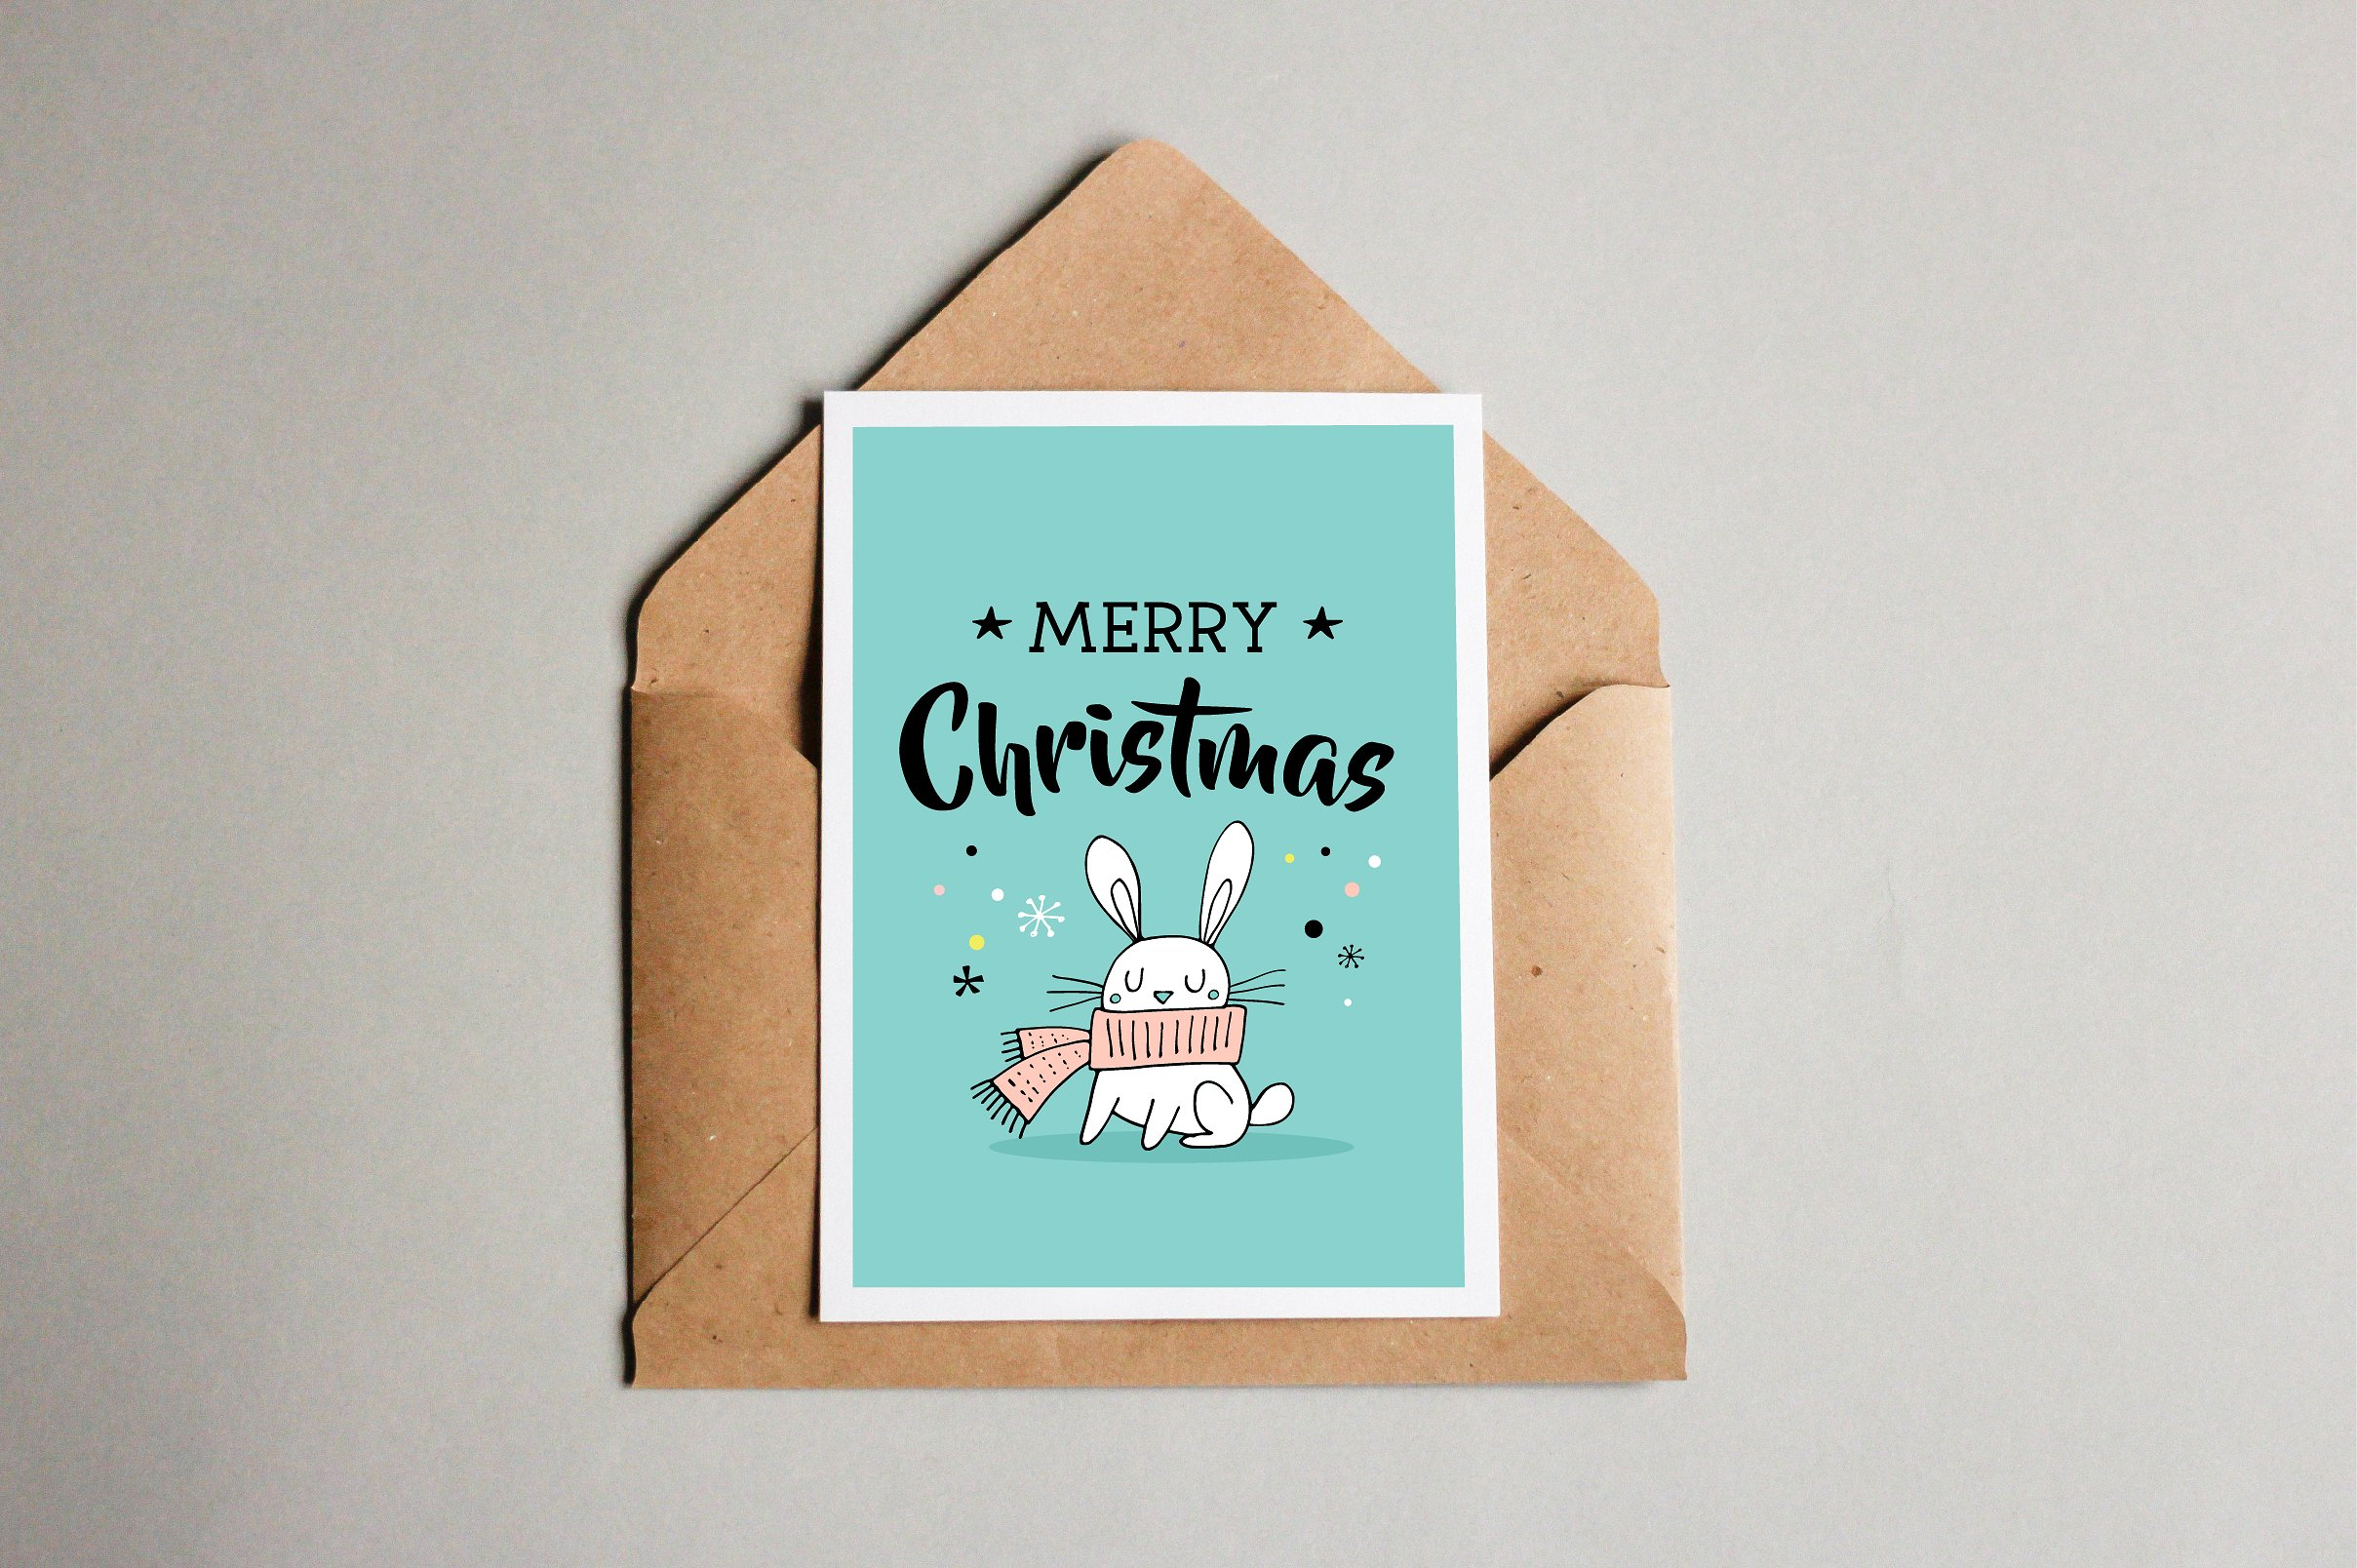 Merry Christmas greetings & doodles  example image 6